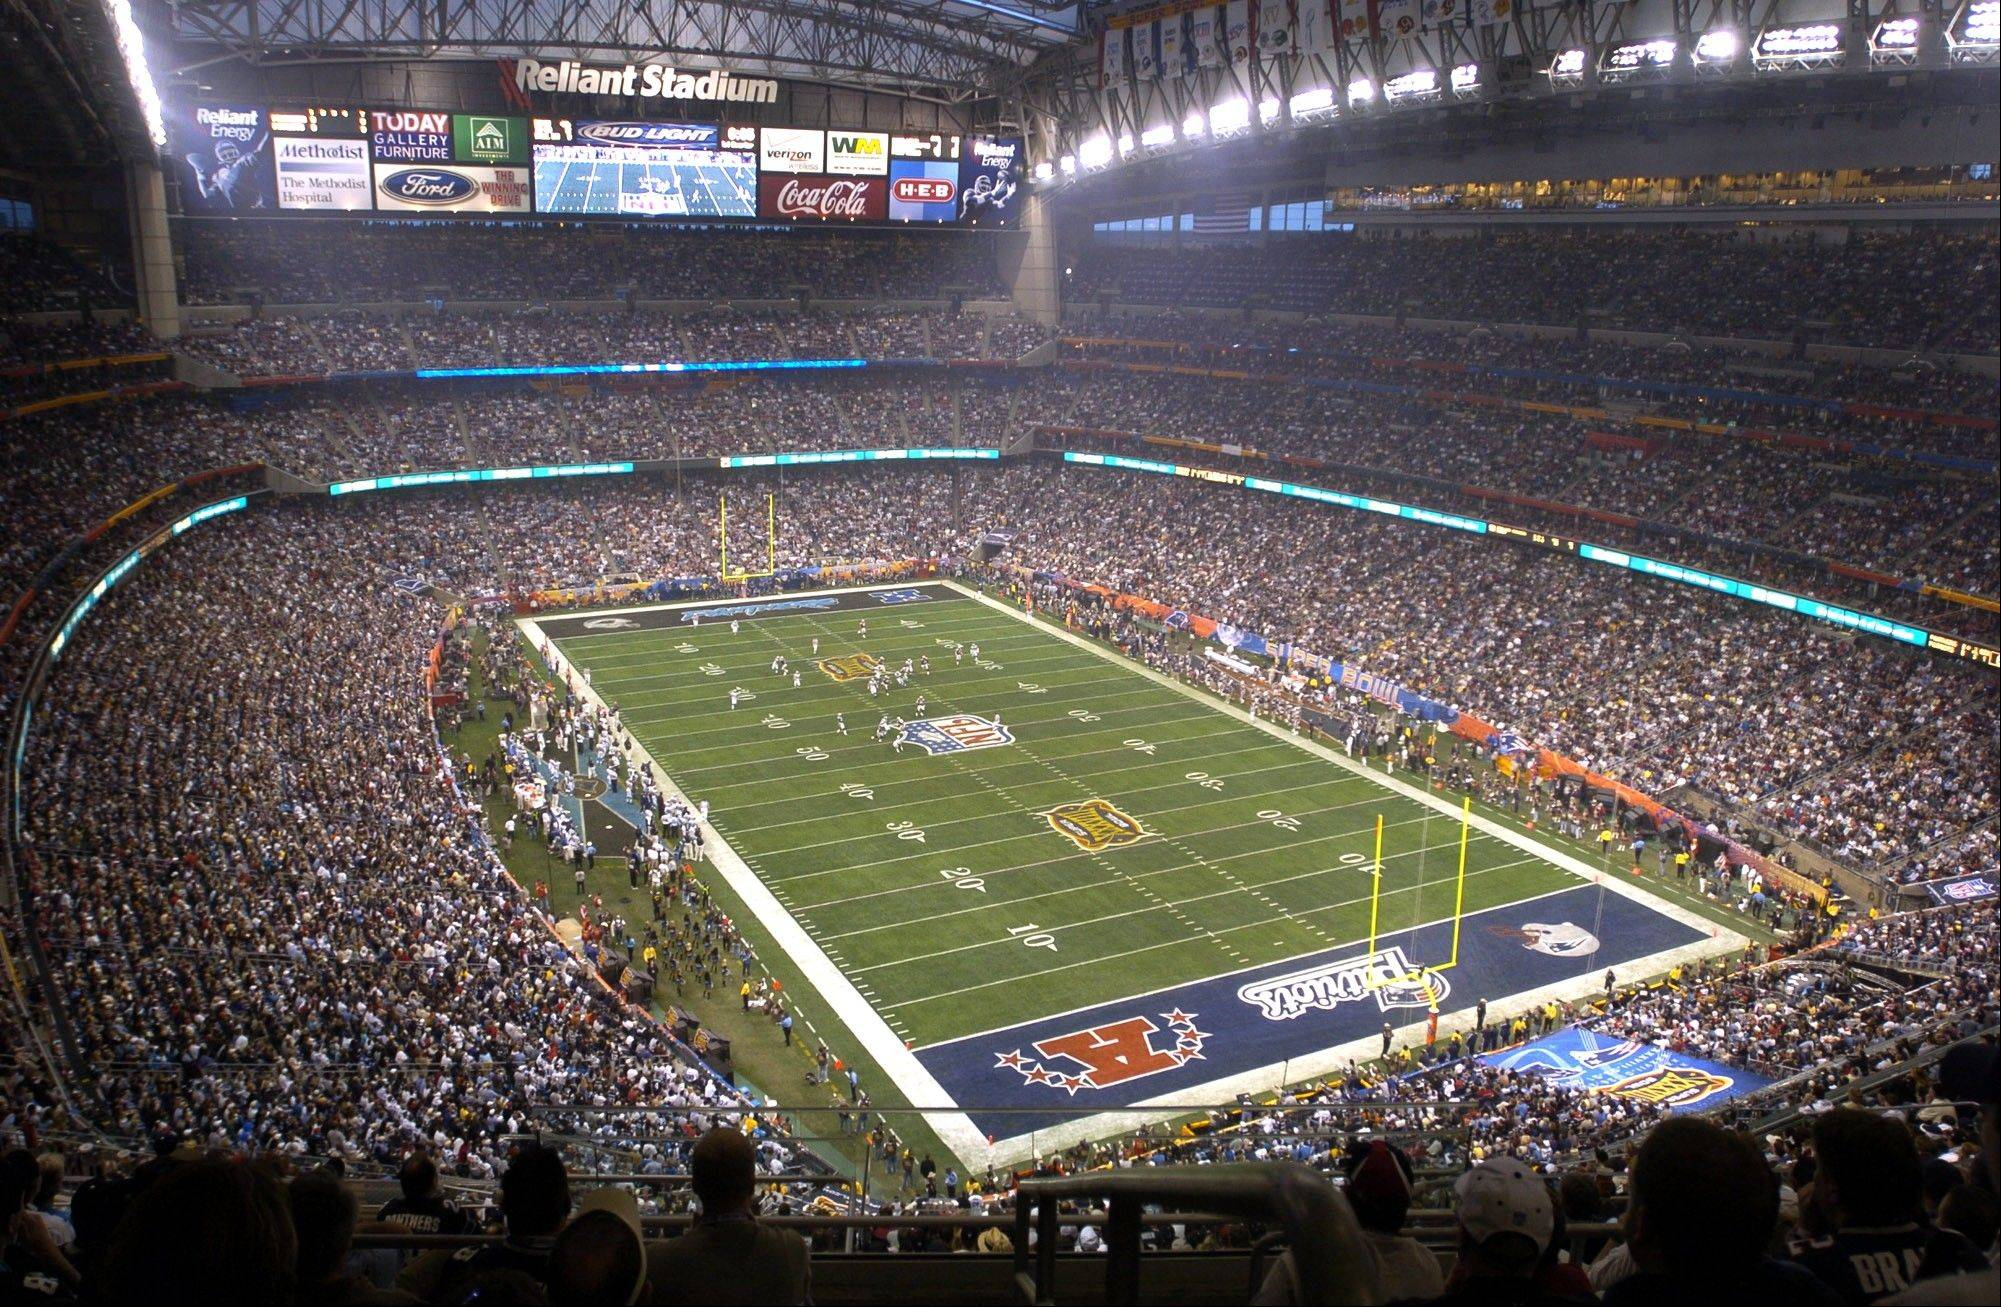 In this Feb. 1, 2004 file photo,†Houston's Reliant Stadium hosts a sellout crowd at Super Bowl XXXVIII between the Carolina Panthers and the New England Patriots in Houston. NFL owners will vote on the sites of the 50th and 51st Super Bowls on Tuesday, May 21, 2013 at their spring meetings. The San Francisco area, where a new stadium is being built in Santa Clara, and South Florida are competing for the the 50th edition, to be held in February 2016.